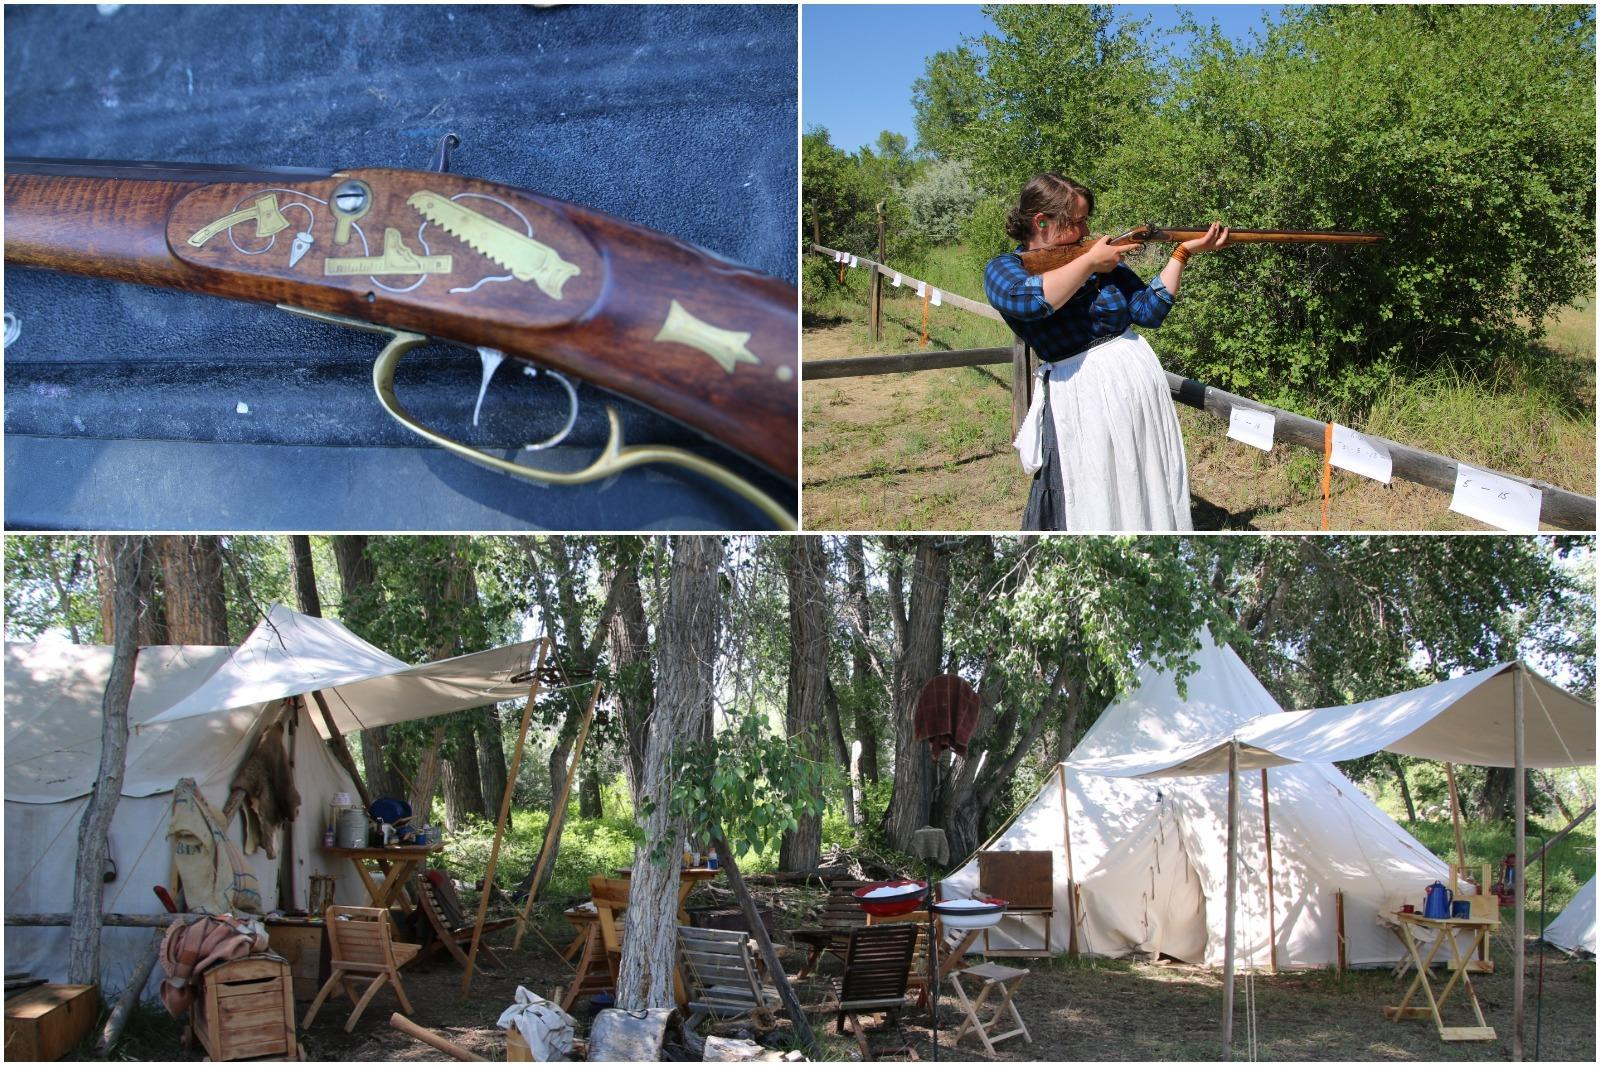 A collage of a gun, a woman in period costume shooting a gun, and a rendezvous camp set up.